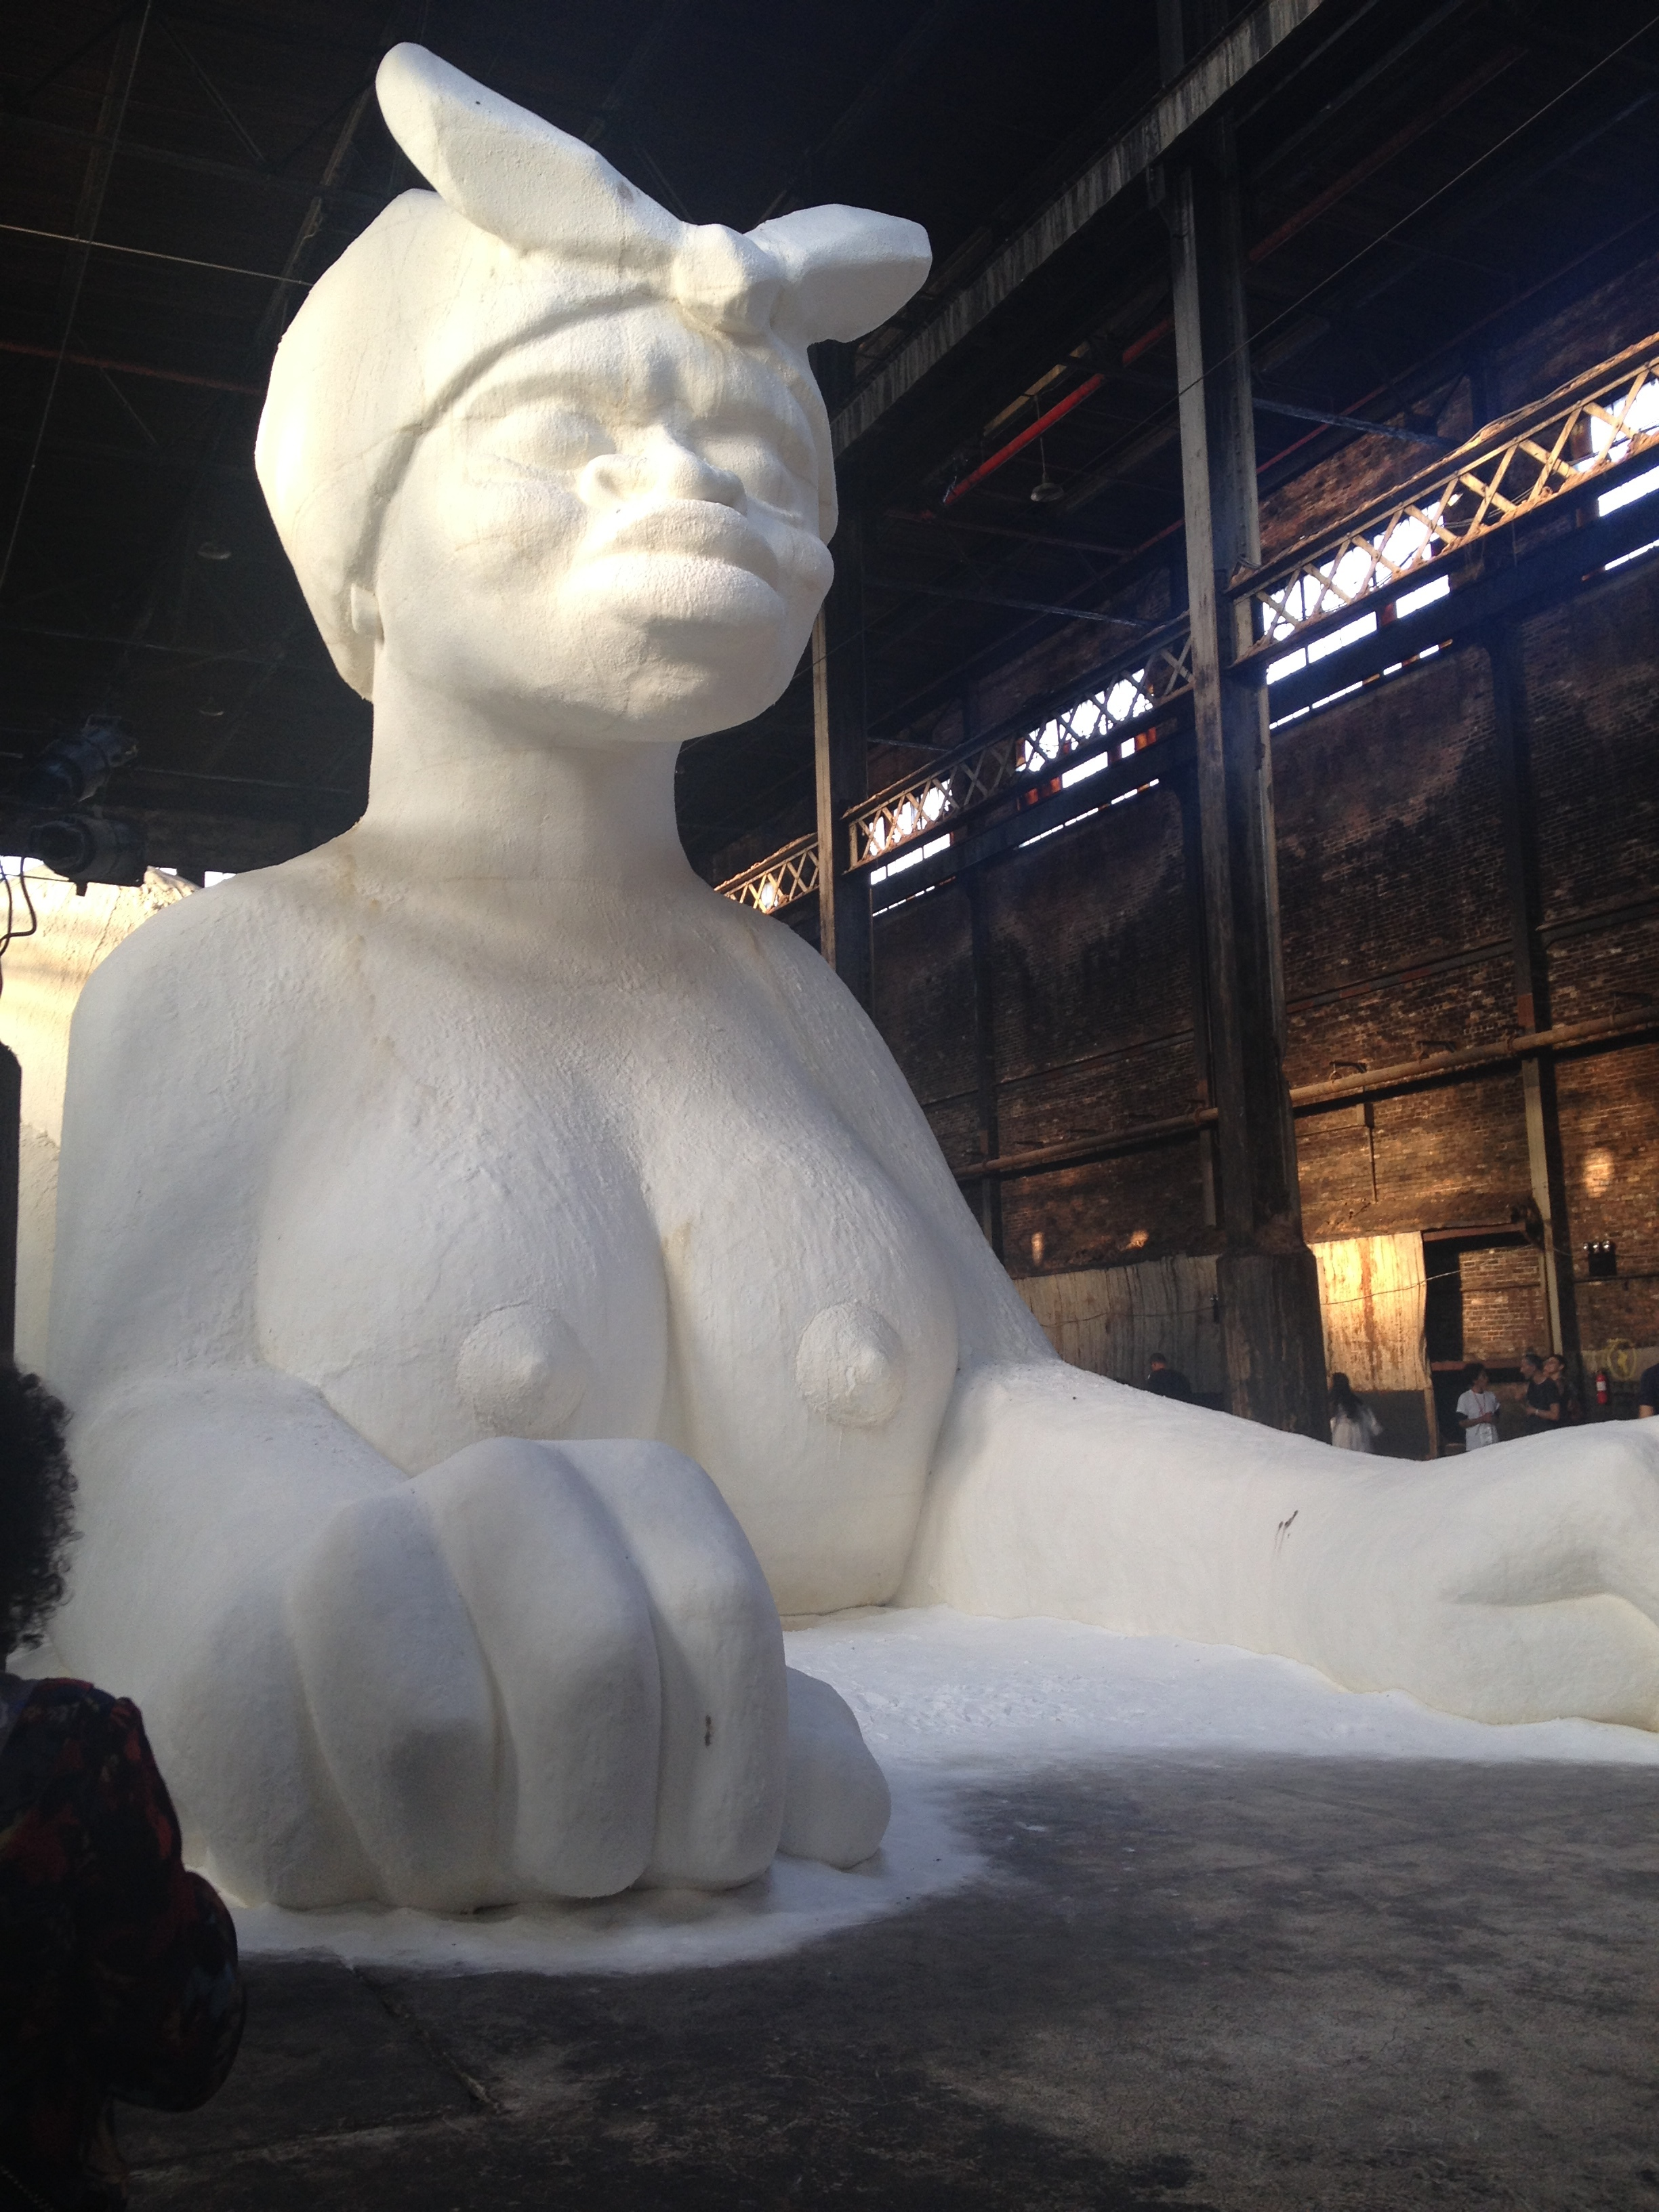 A Subtlety   by Kara Walker, Domino Sugar Factory, Brooklyn, 2014. Presented by Creative Time. Photograph by inga.